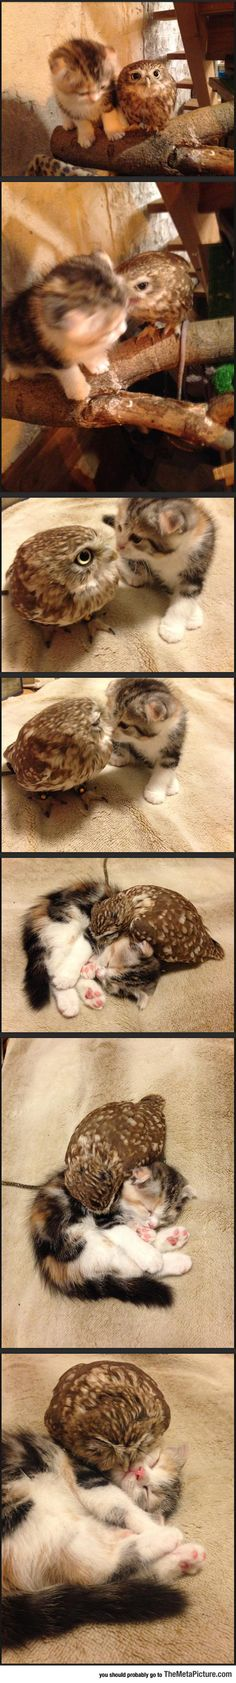 Kitten And Owlet - Can we all say , Aaahhhhhh?